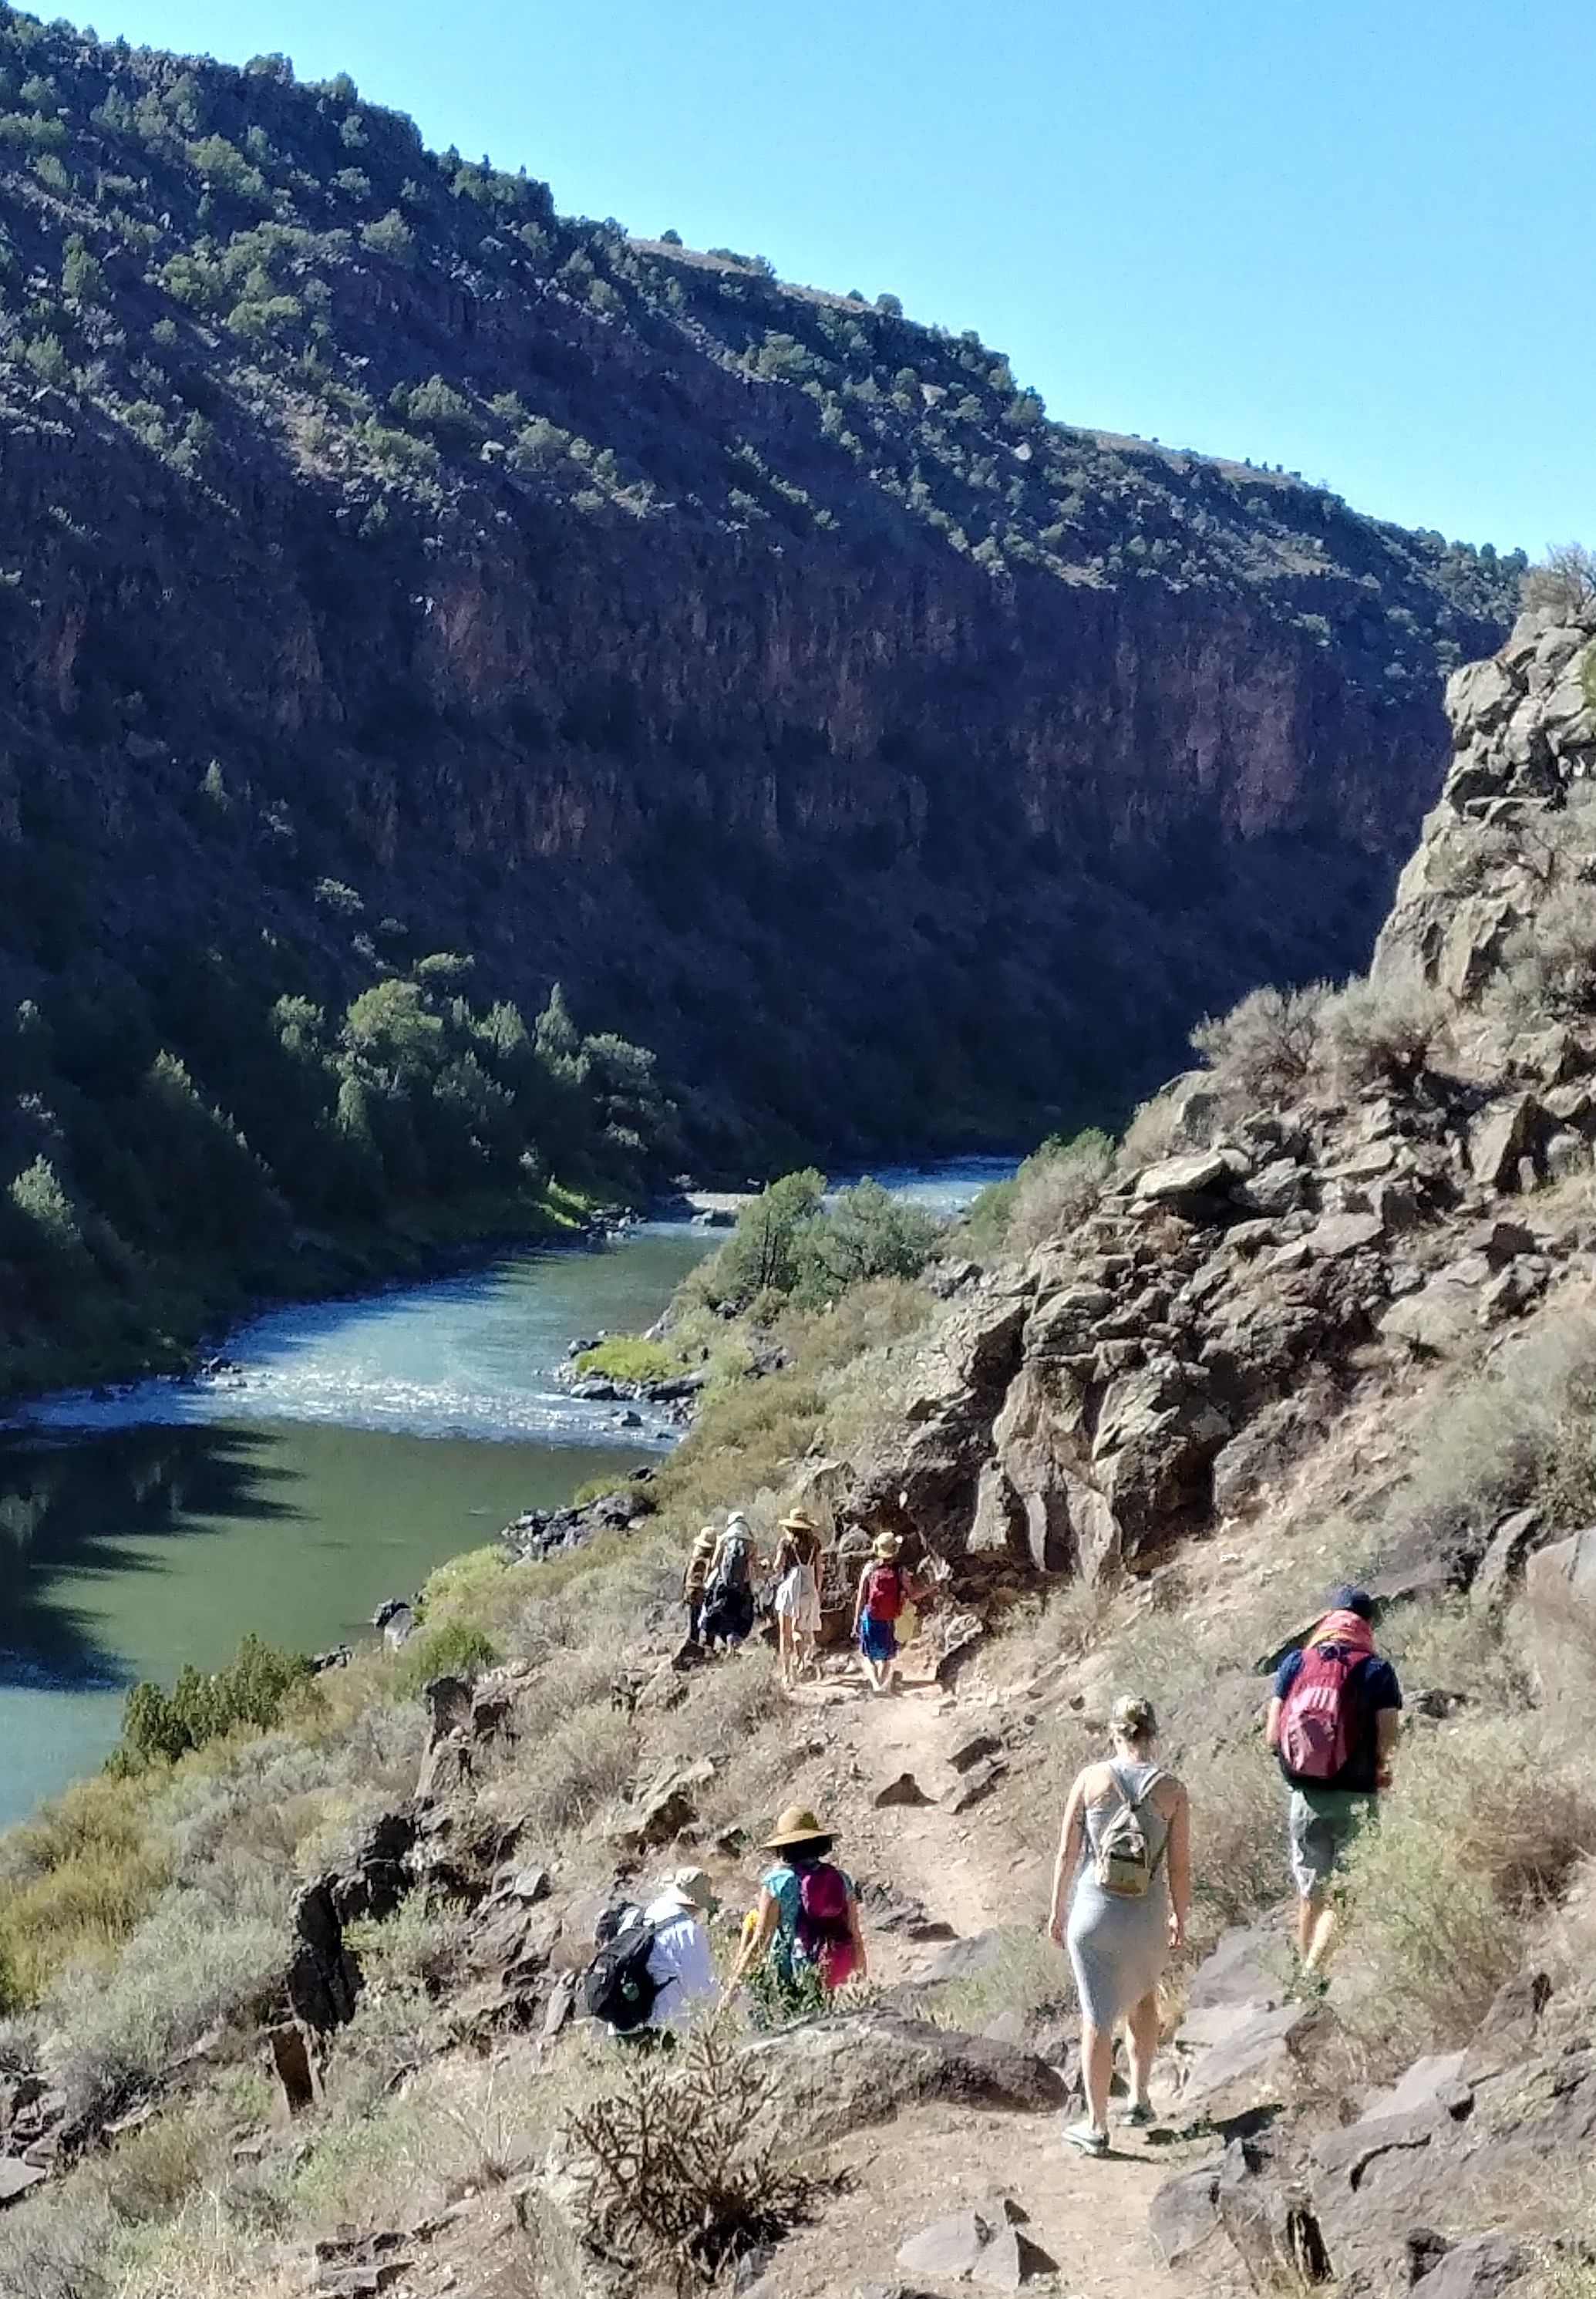 Walking down to the Rio Grande to work with the Devas and the guardians of the land.